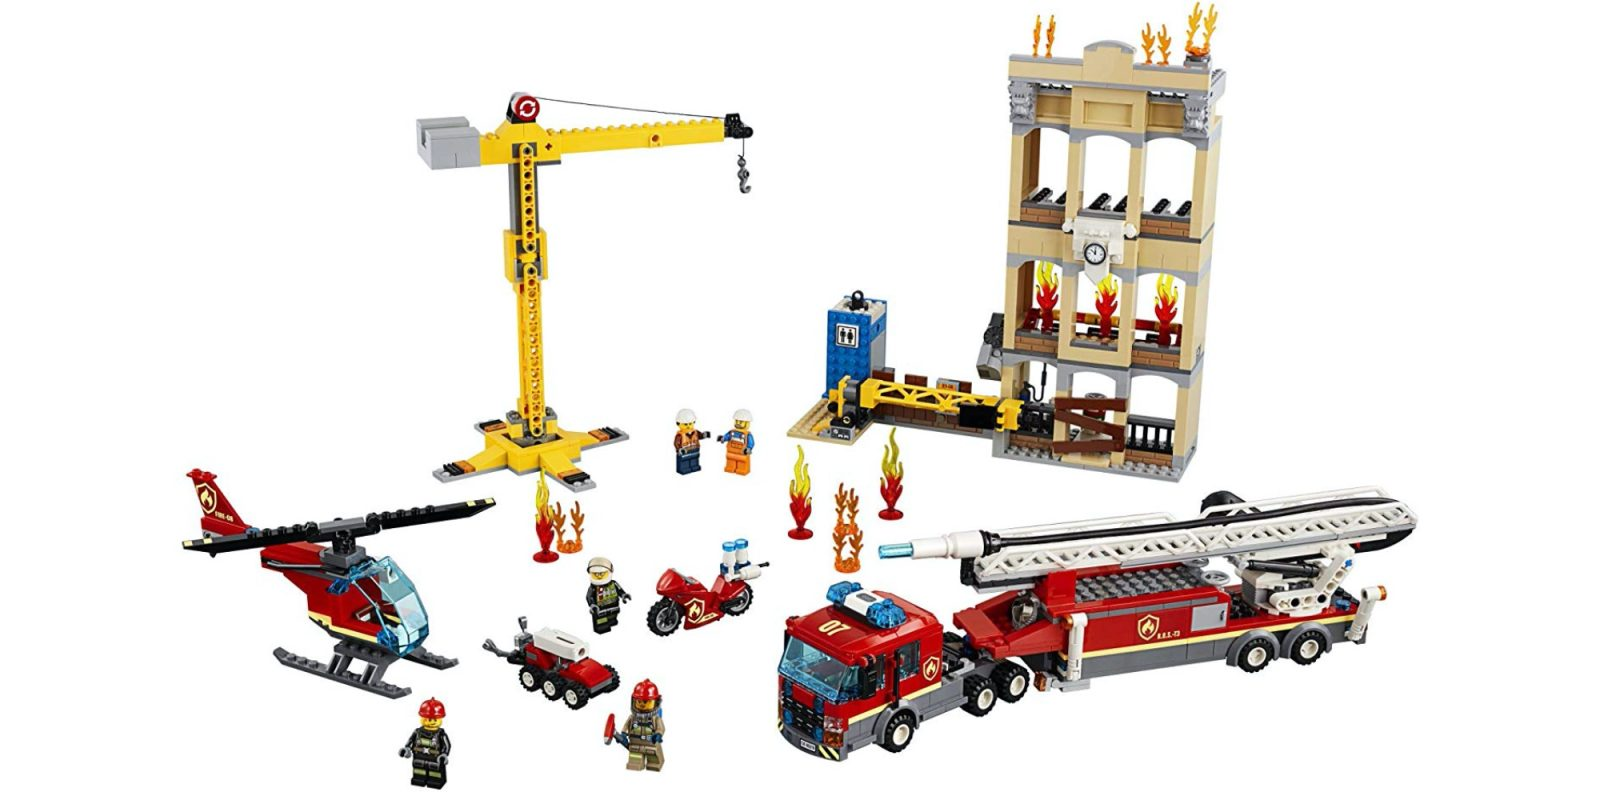 LEGO's Downtown Fire Brigade kit sees rare discount to $81 (Reg. $100), more